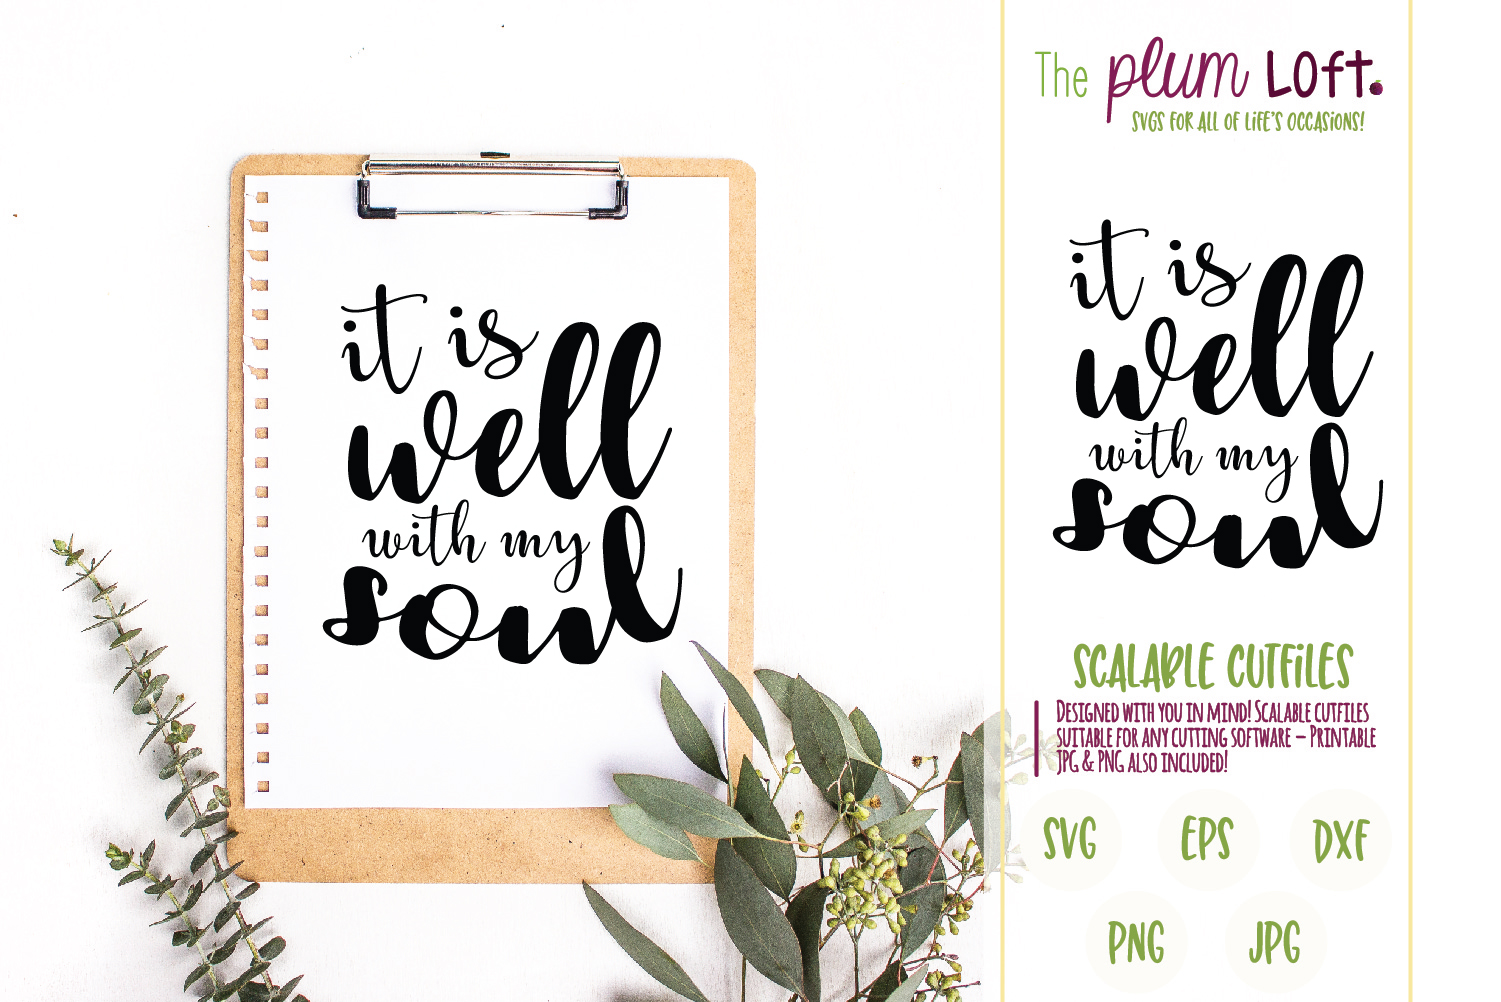 image relating to It is Well With My Soul Printable titled It is perfectly with my soul - SVG